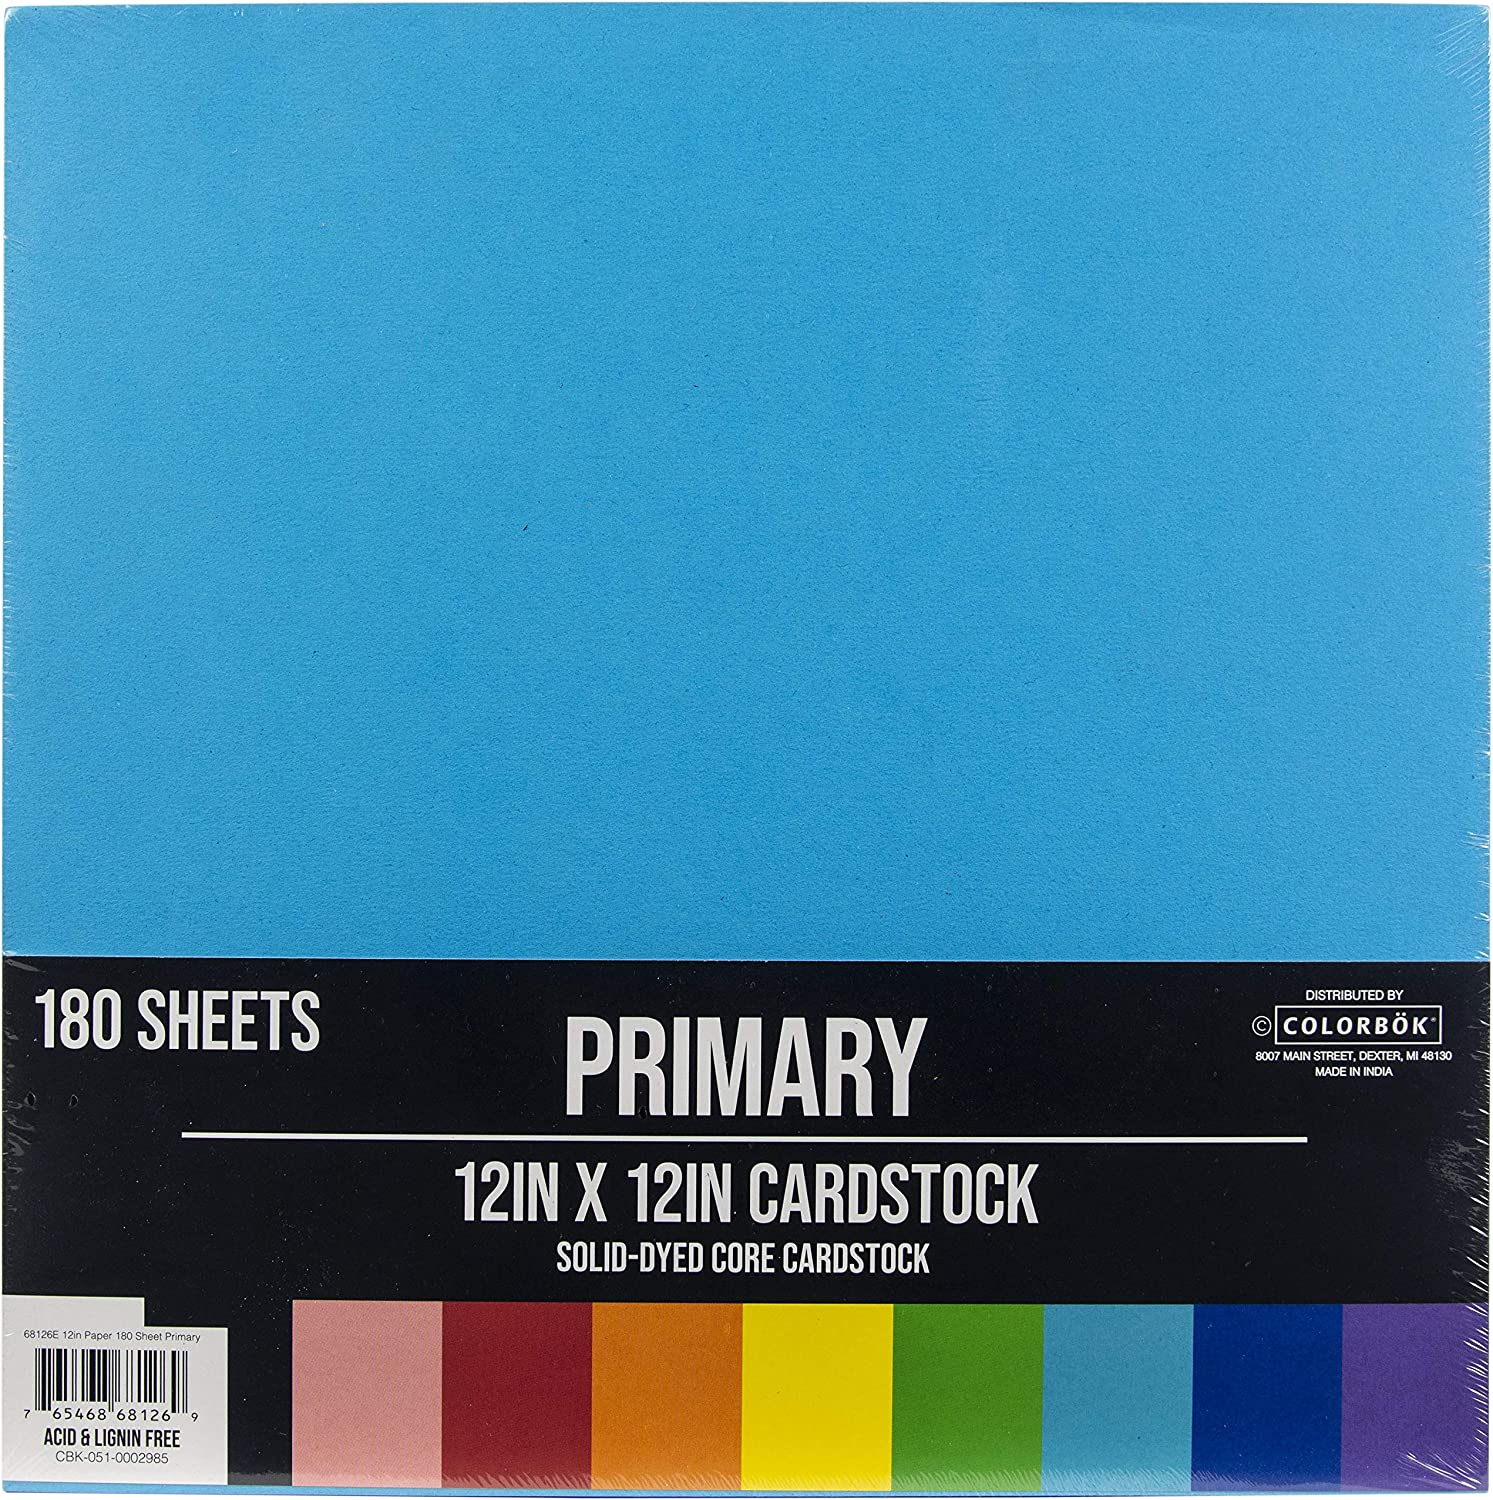 78lb Single-Sided Printed Cardstock 12 x 12 Inches Colorbok 30 Sheets Spray Paint 10 Designs//3 Each